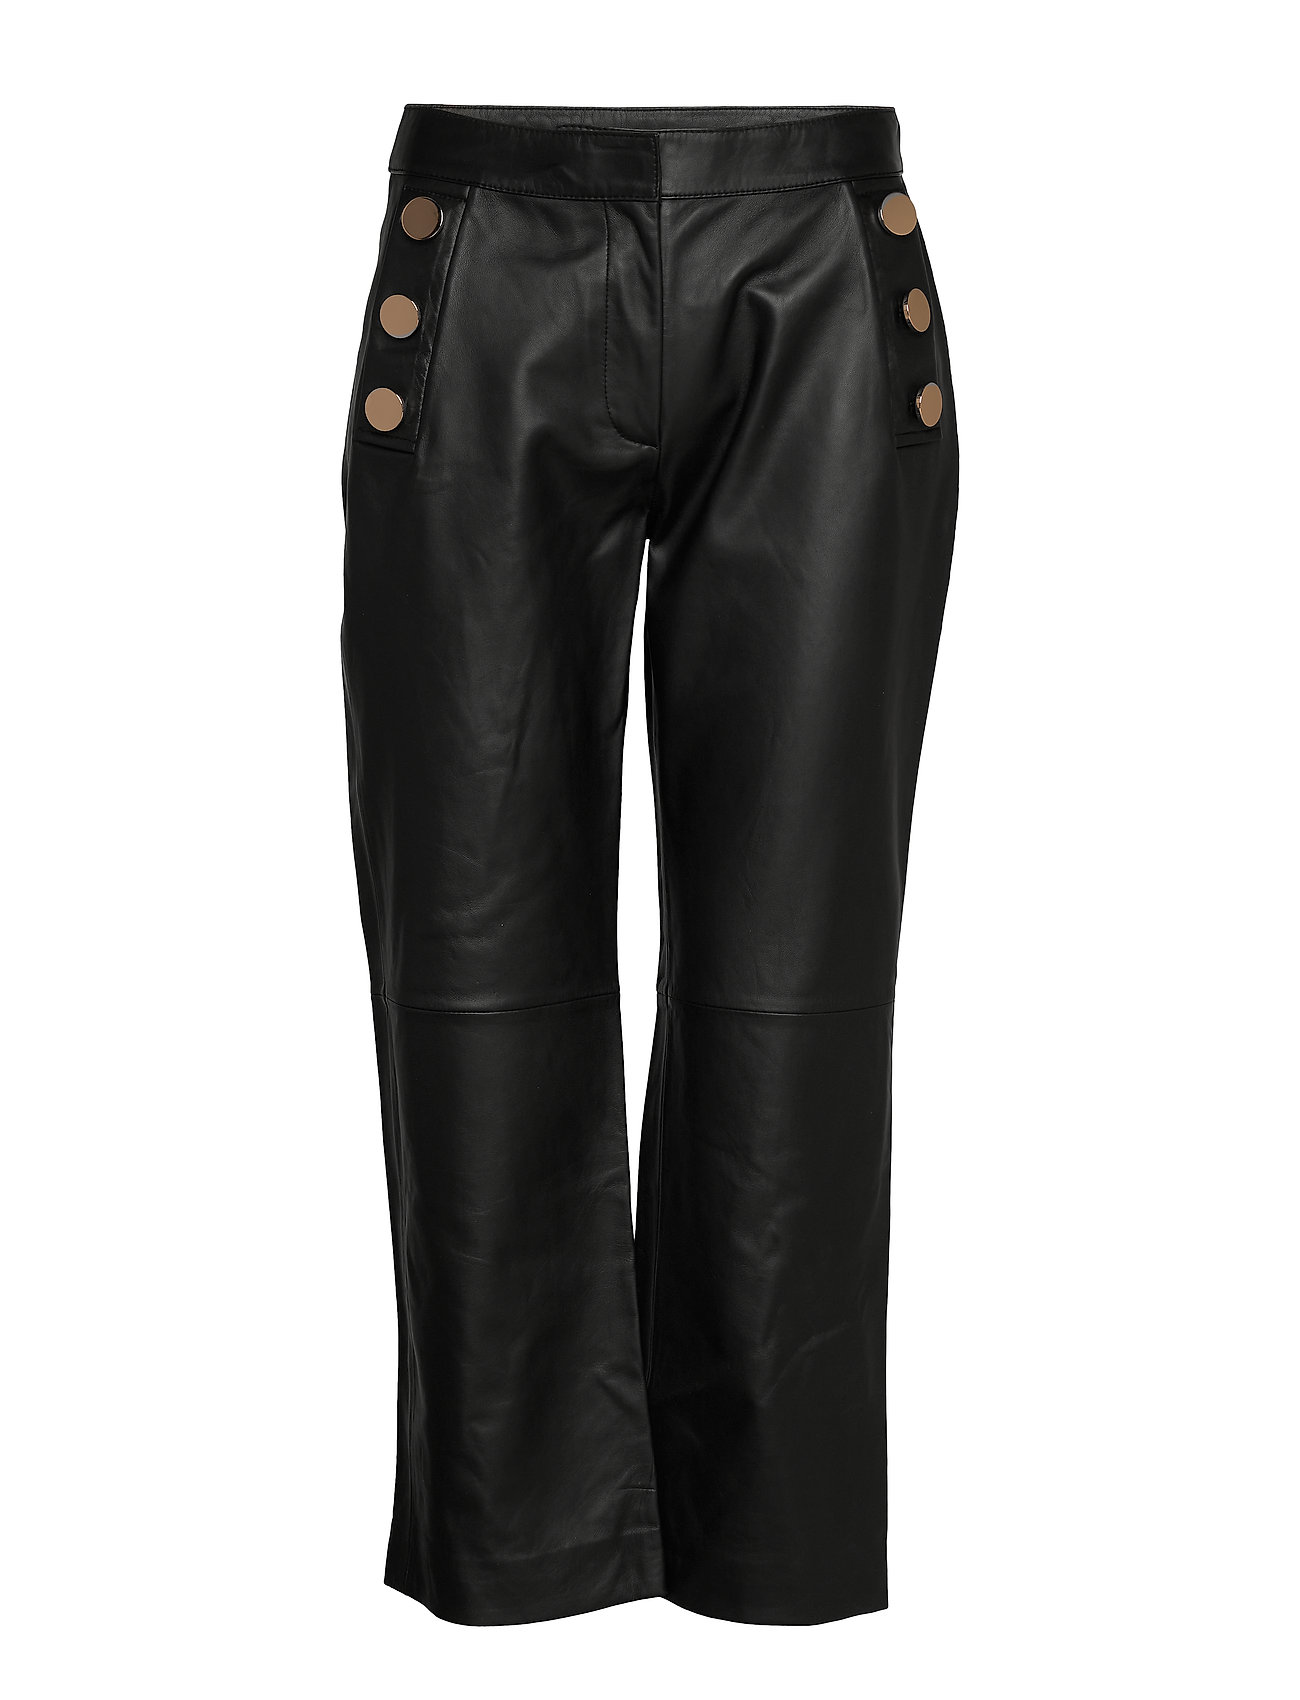 Image of Day Scilla Leather Leggings/Bukser Sort Day Birger Et Mikkelsen (3414562449)